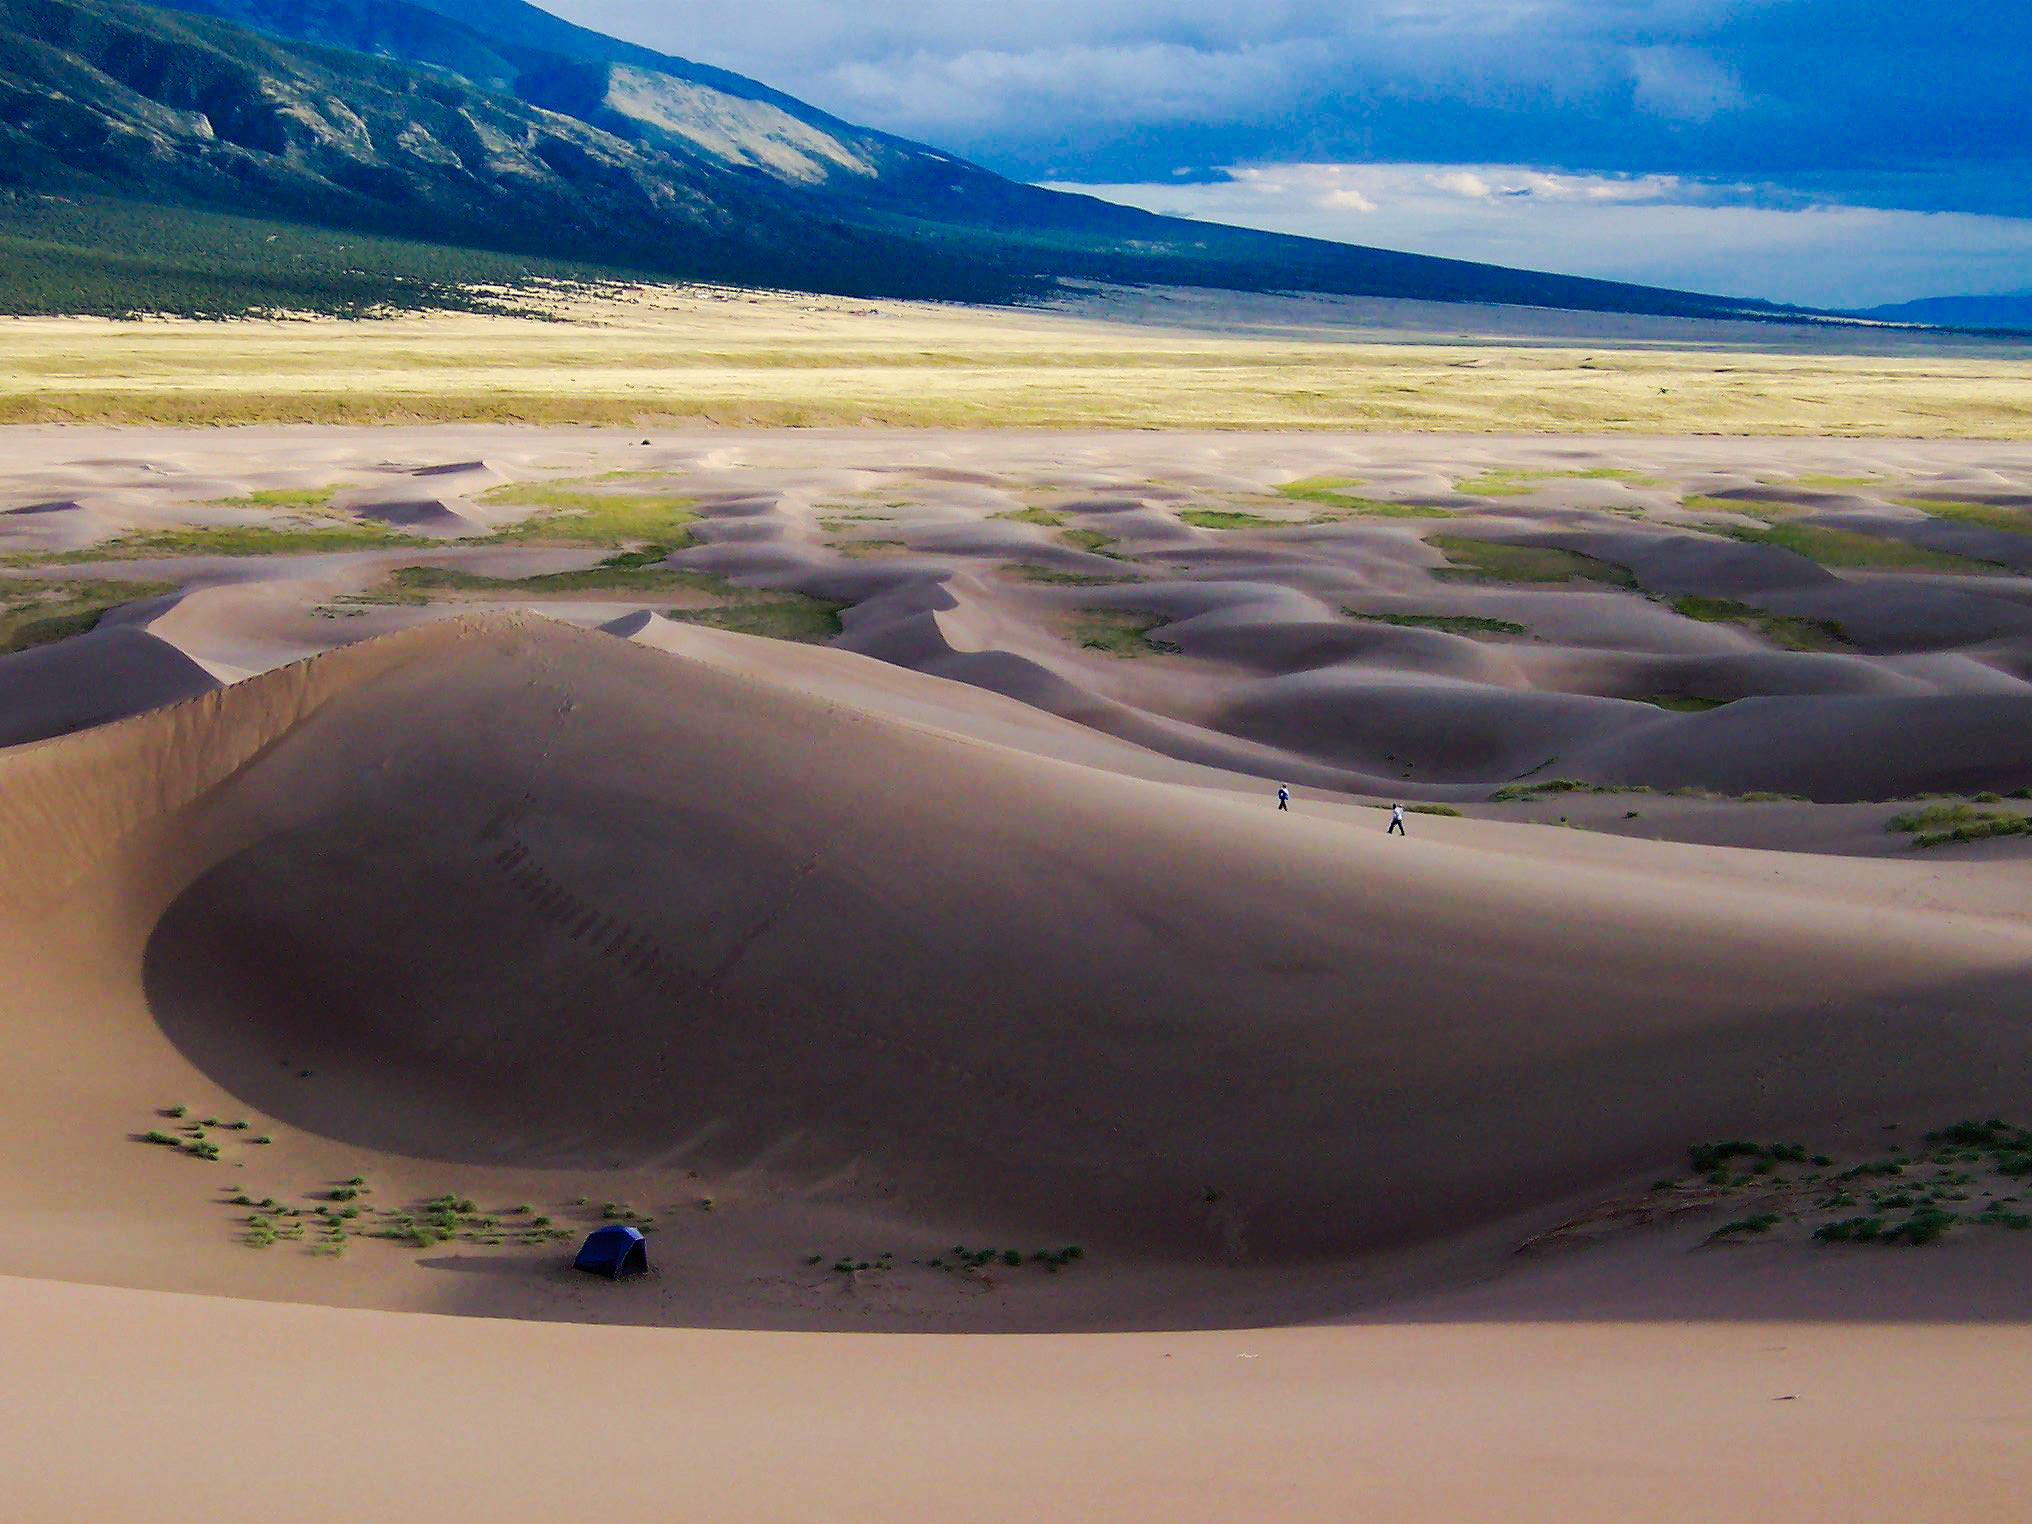 Backcountry Camping In Great Sand Dunes National Park